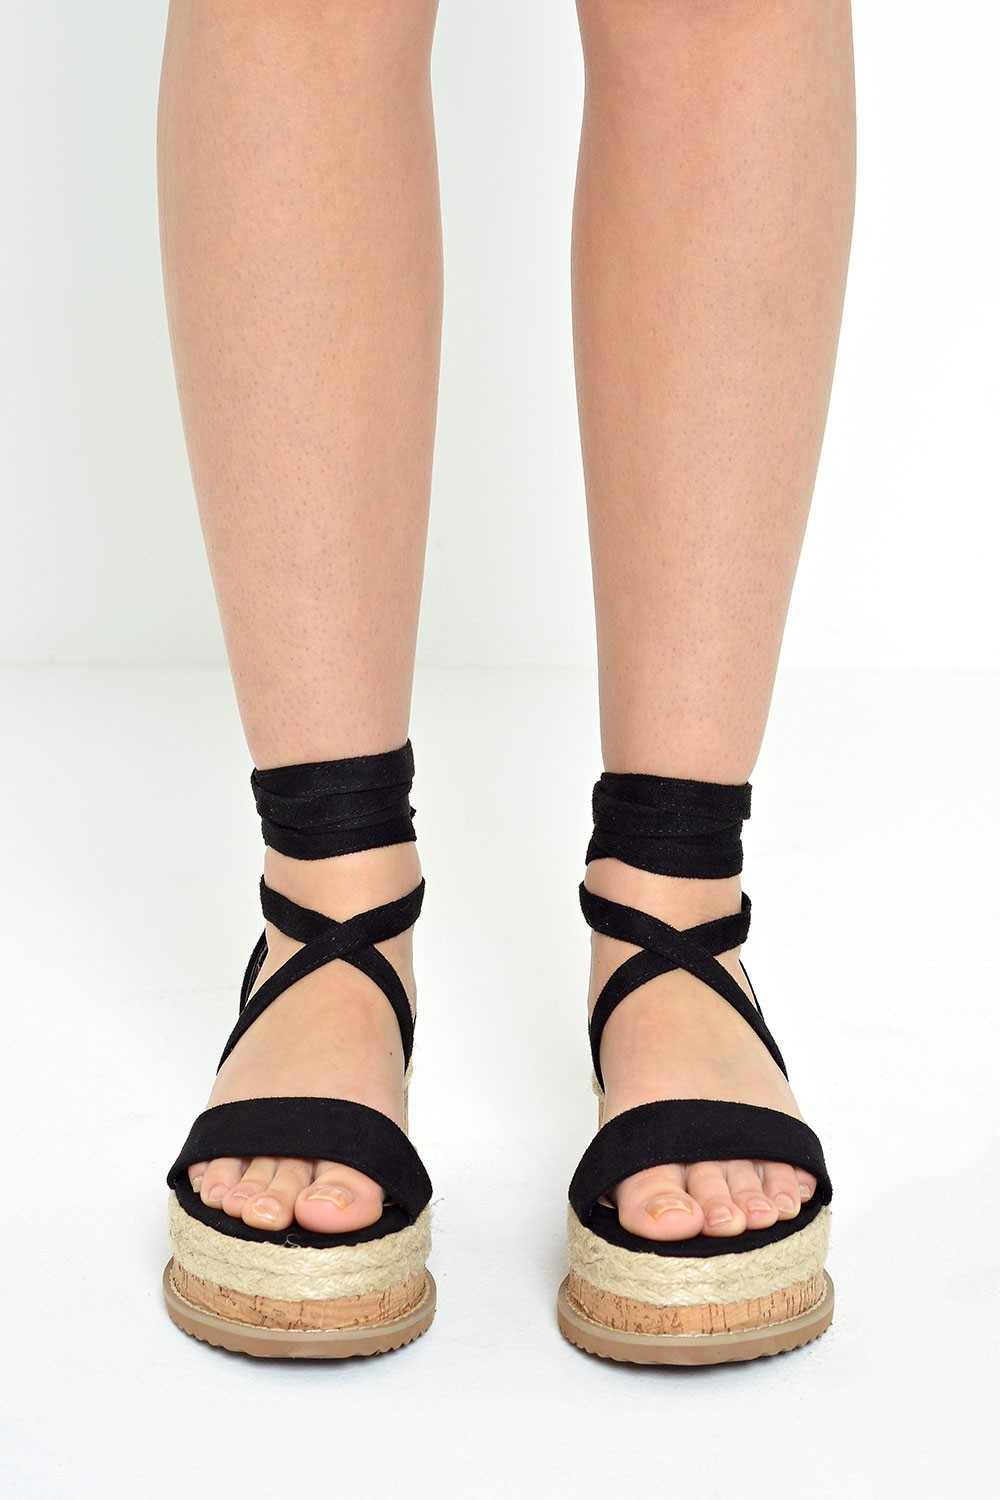 Zigi Soho Wedge Sneaker | Bcbg Shoes Dillards | Espadrilles Tie Up